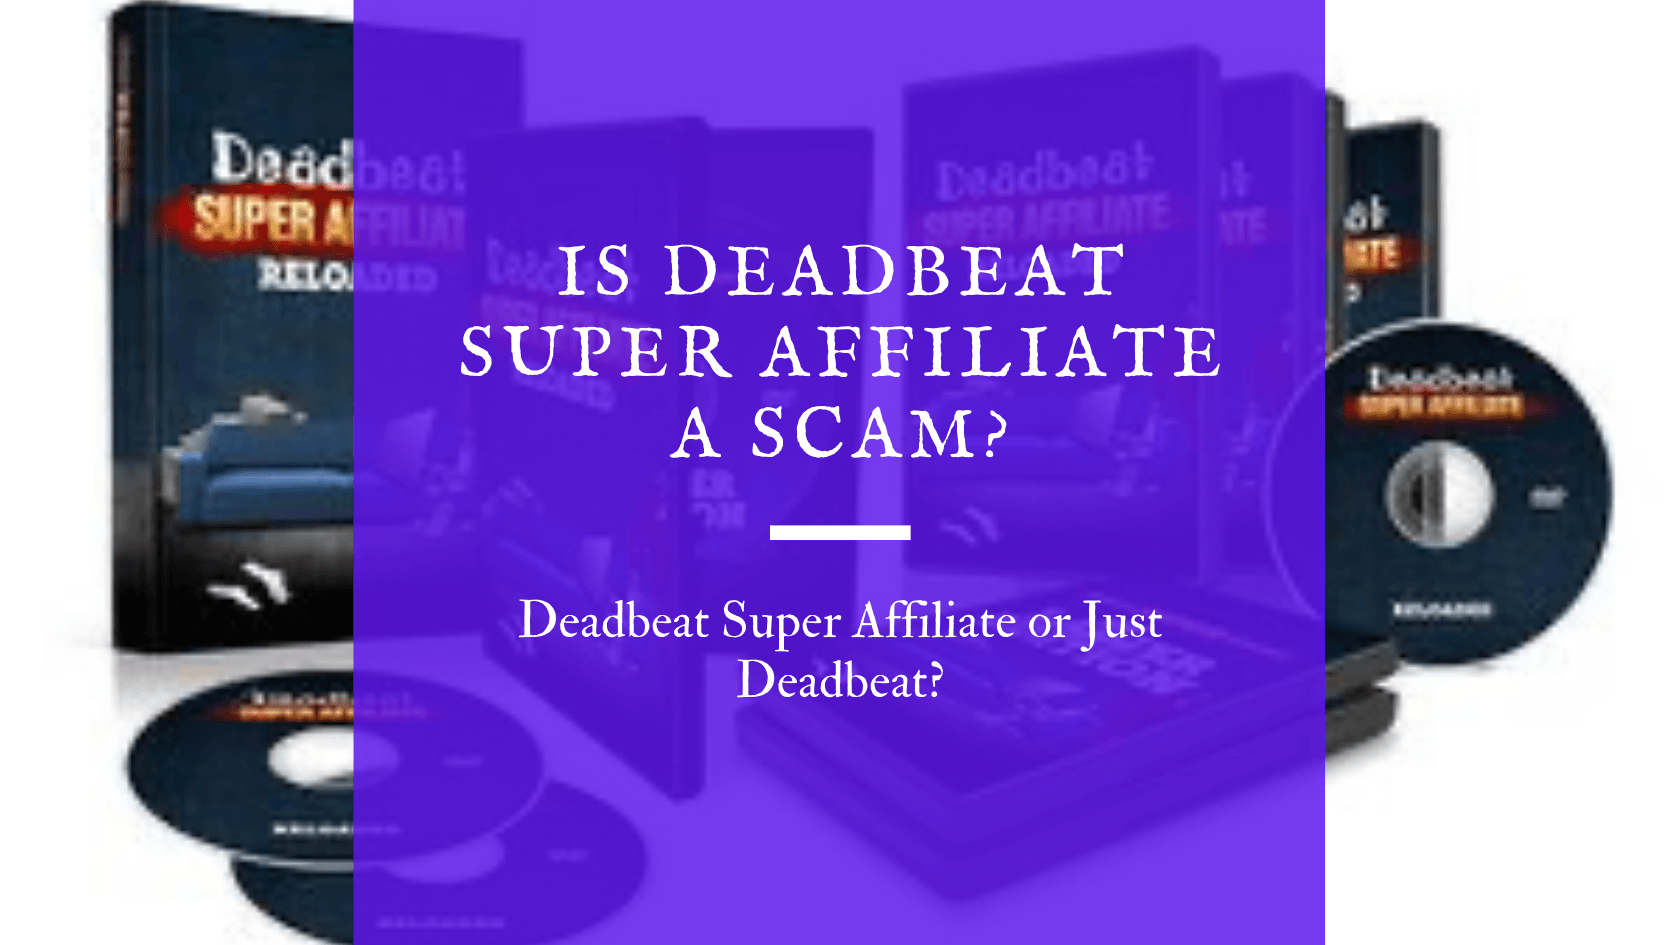 Is Deadbeat Super Affiliate a Scam